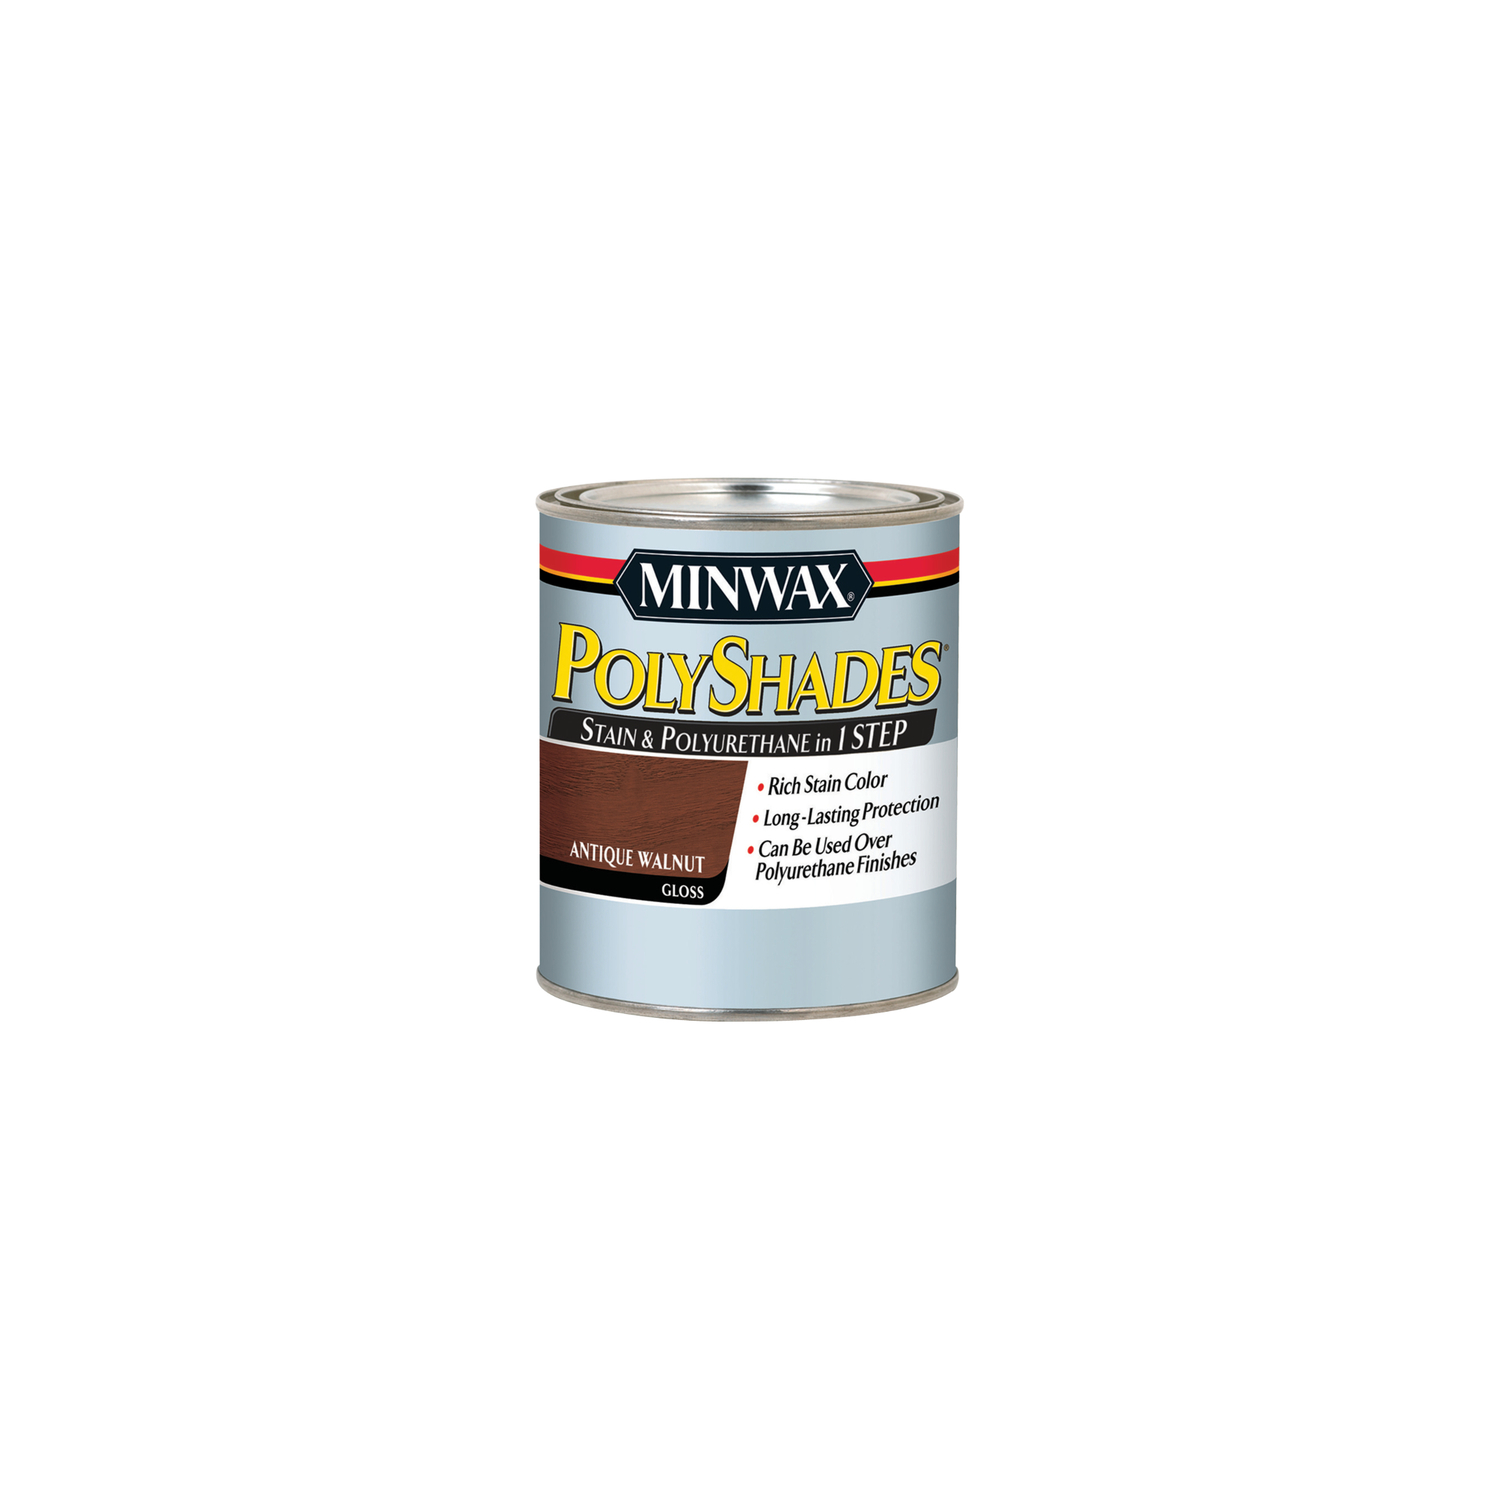 Minwax  PolyShades  Semi-Transparent  Gloss  Antique Walnut  Oil-Based  Polyurethane  Polyurethane S